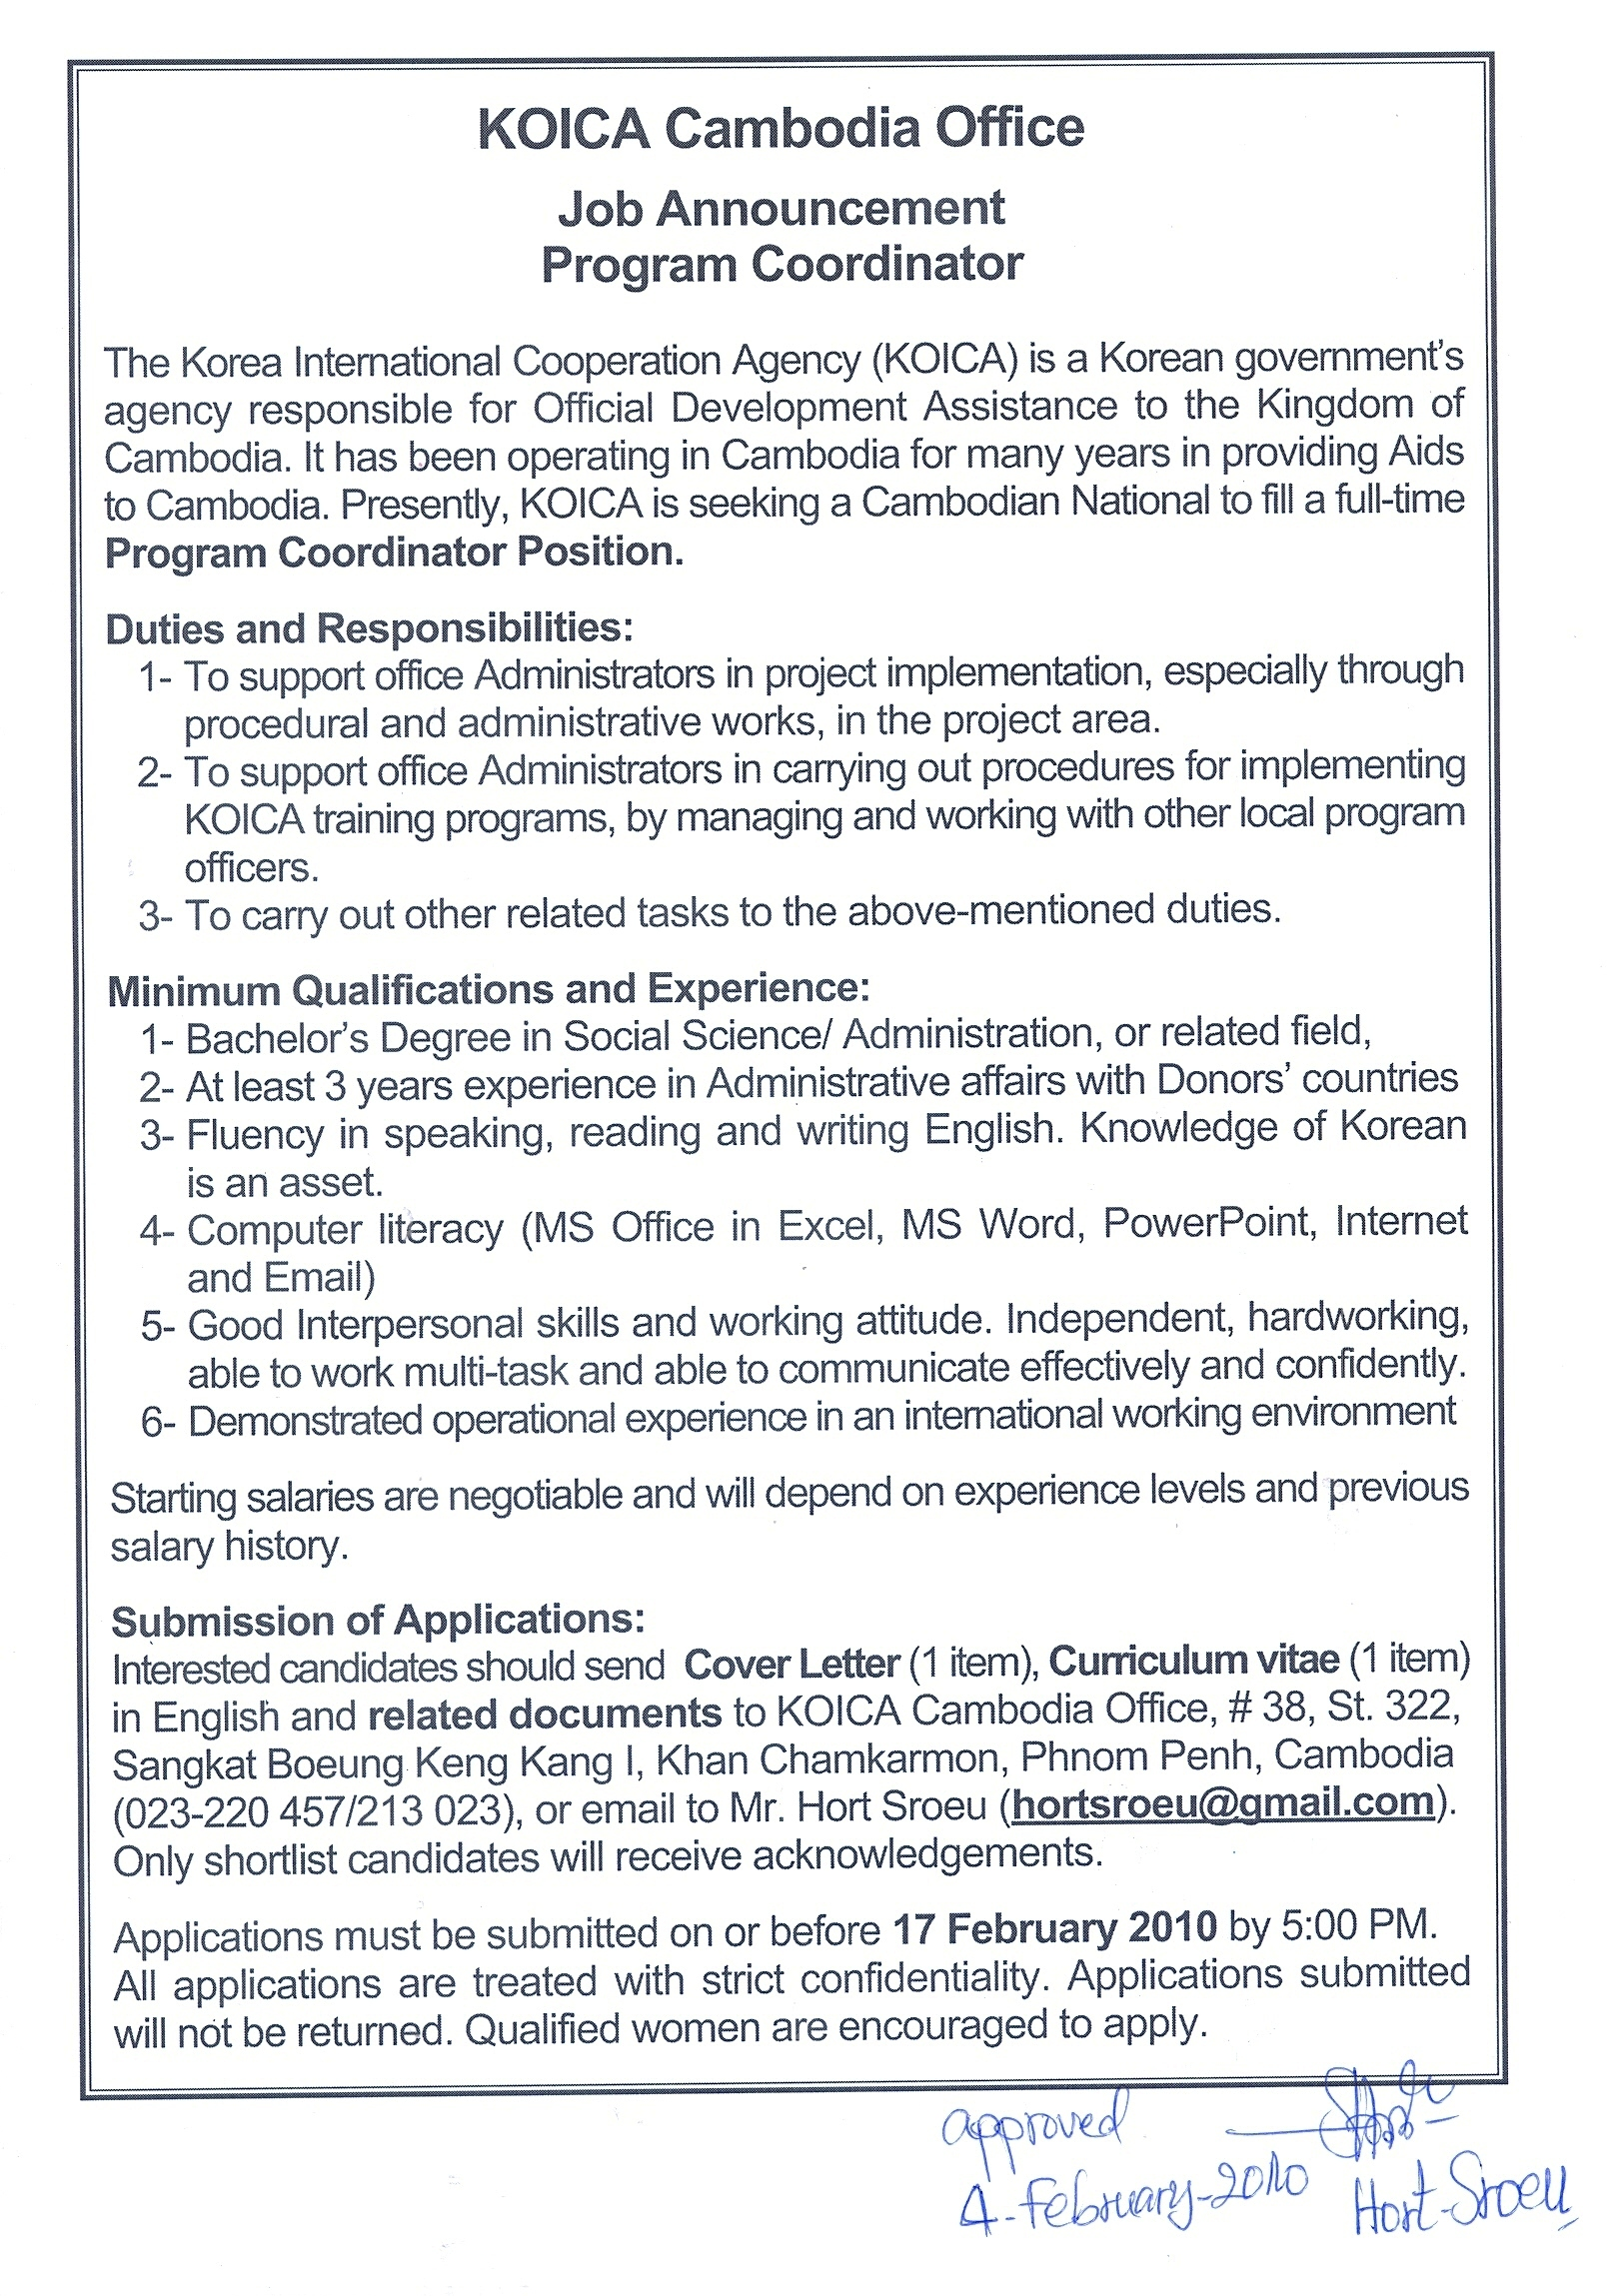 KOICA Cambodia Office Job Announcement Program Coordinator – New Job Announcement Letter